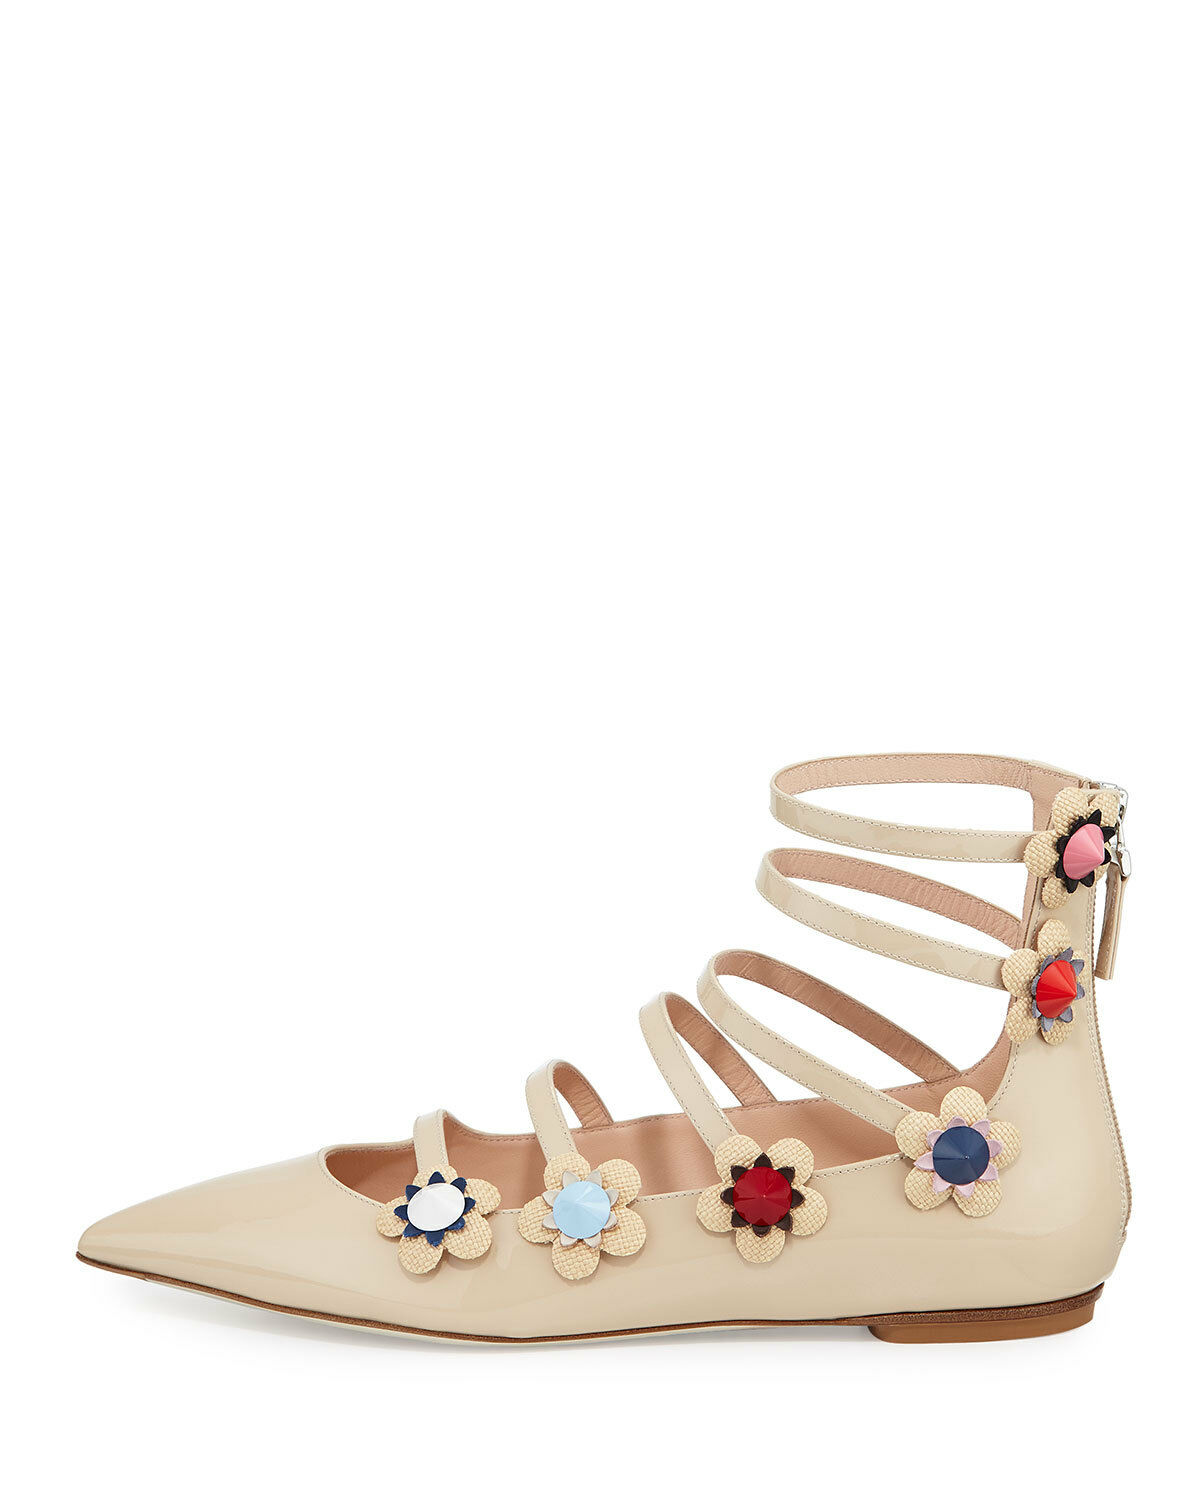 Fendi Flowerland Pointy Toe Toe Toe Flats Ballet chaussures 36.5 Nude Pumps Gladiator Beige bacbd0